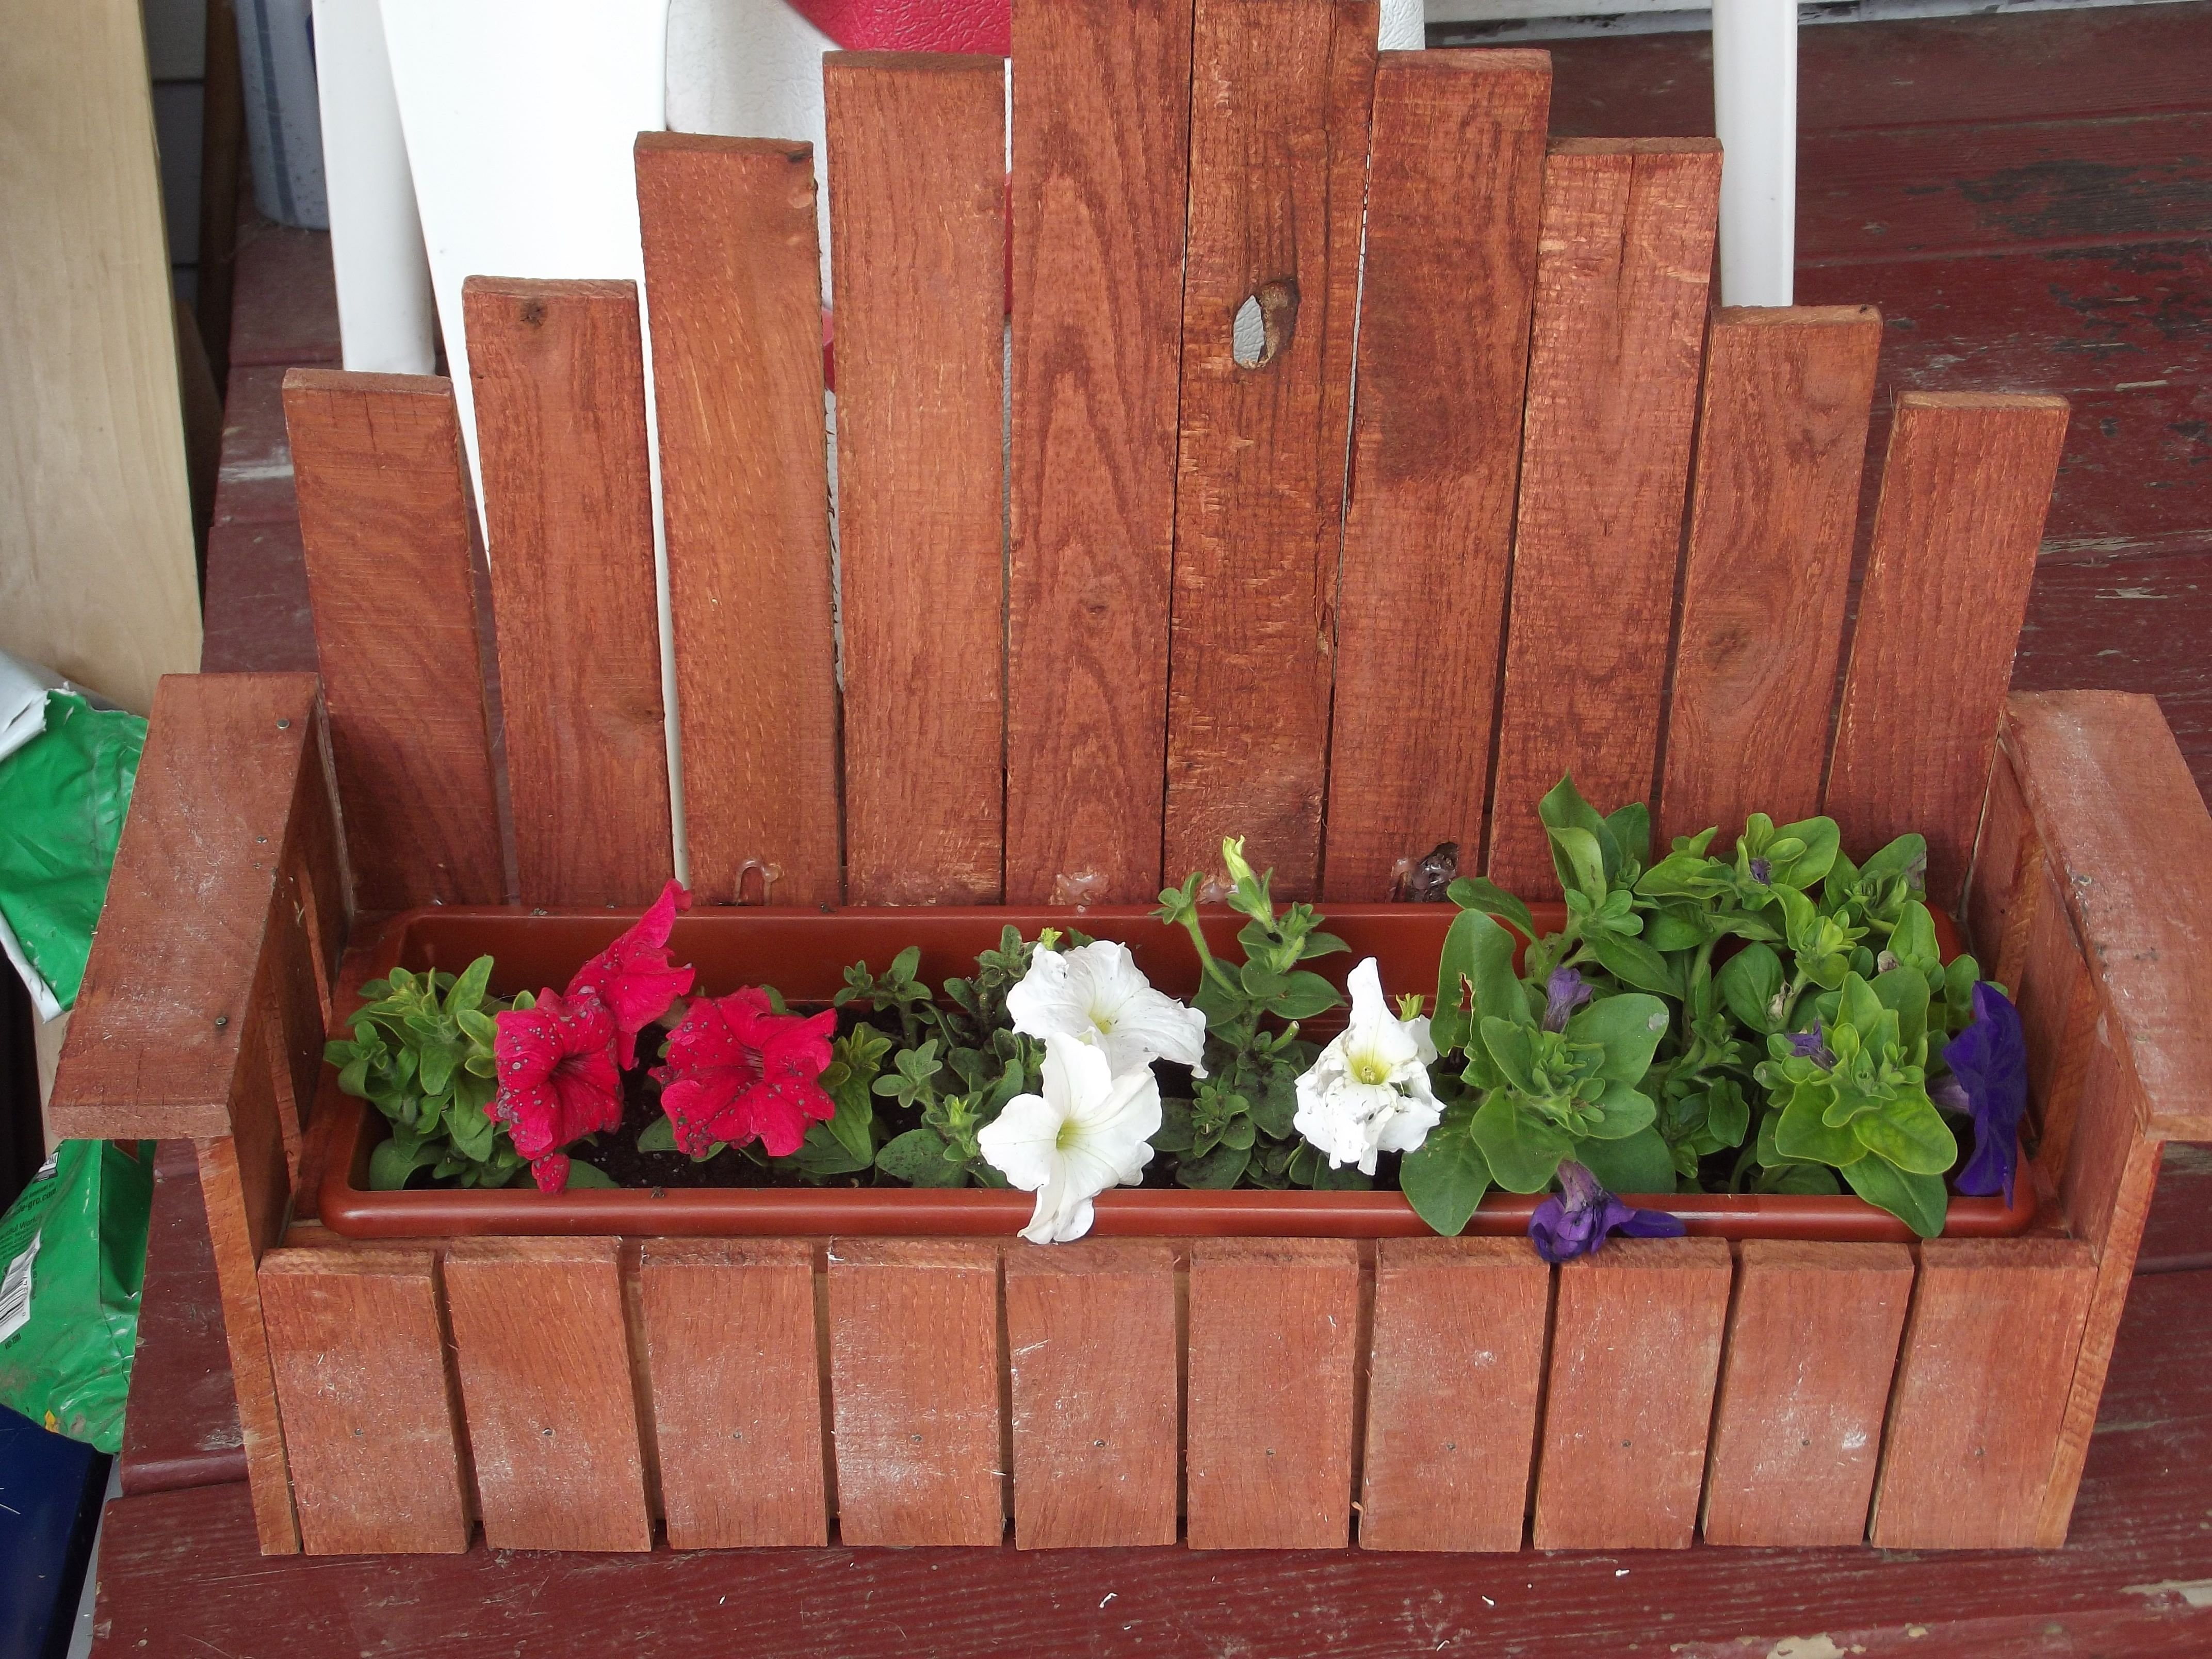 Mini Bench Planter Made From A 1x4 Board Lathe Boards And A Window Planter Planter Box Plans Woodworking